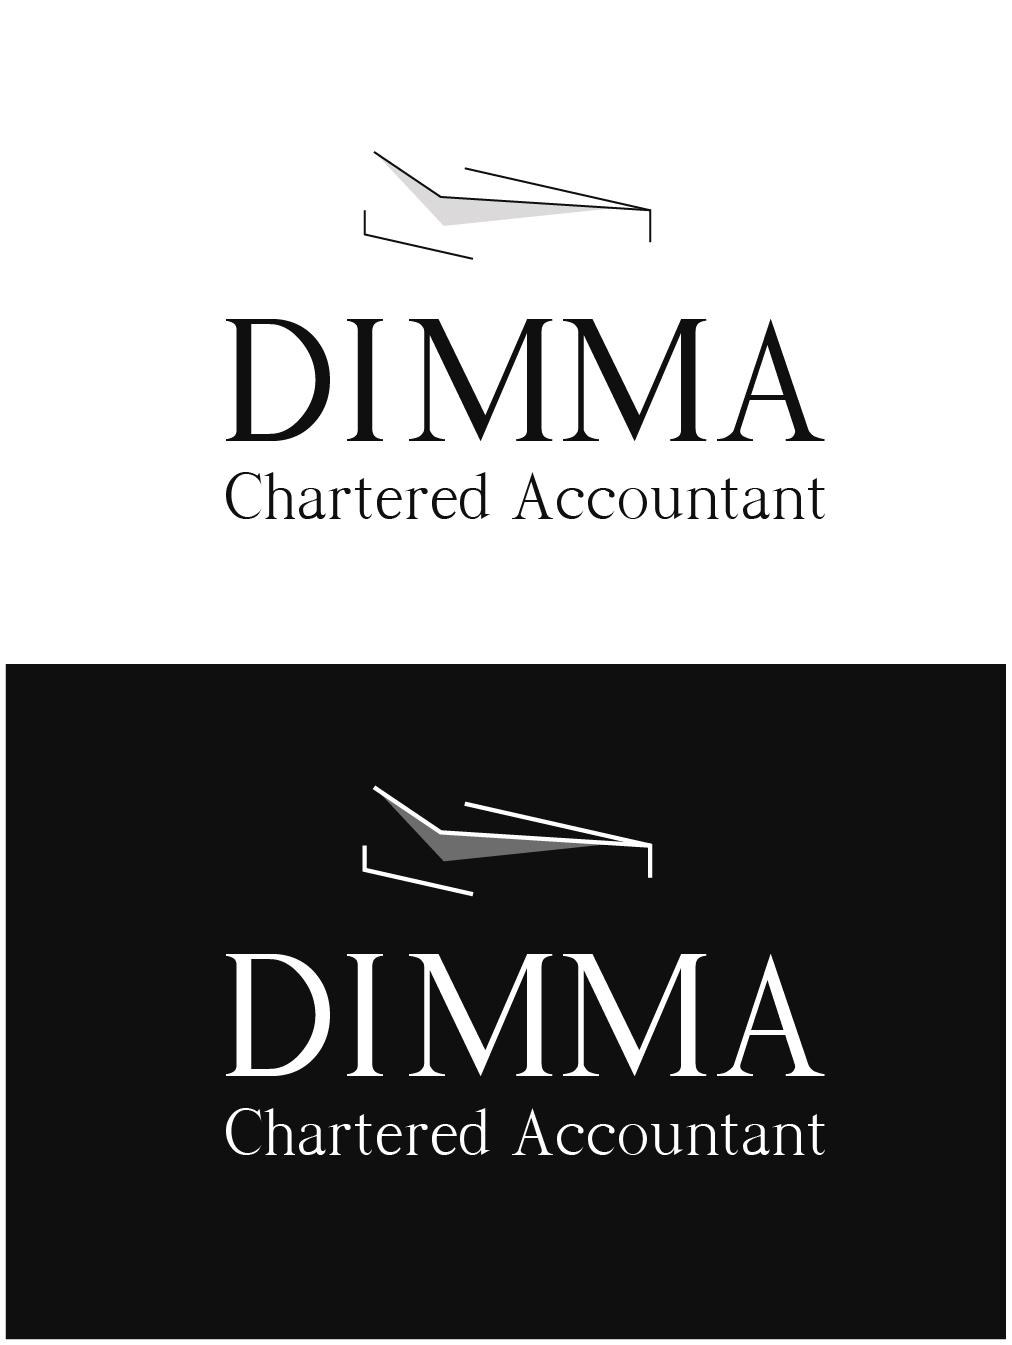 Logo Design by gkonta - Entry No. 31 in the Logo Design Contest Creative Logo Design for Dimma Chartered Accountant.